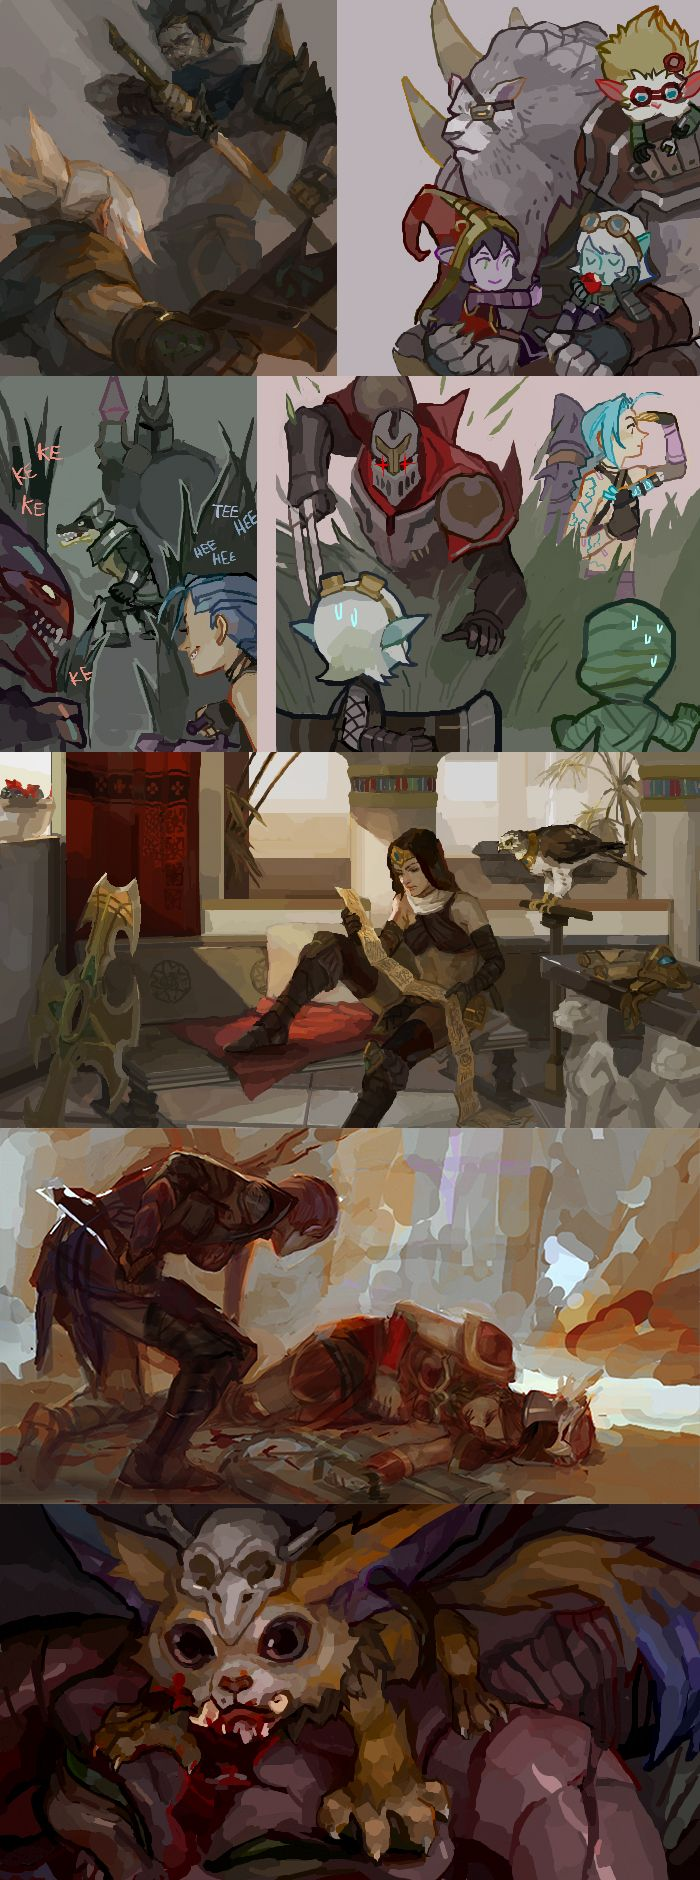 Lol Champs Compilation 7 By Zuqling On Deviantart Lol League Of Legends Lol Champ Lol Champions